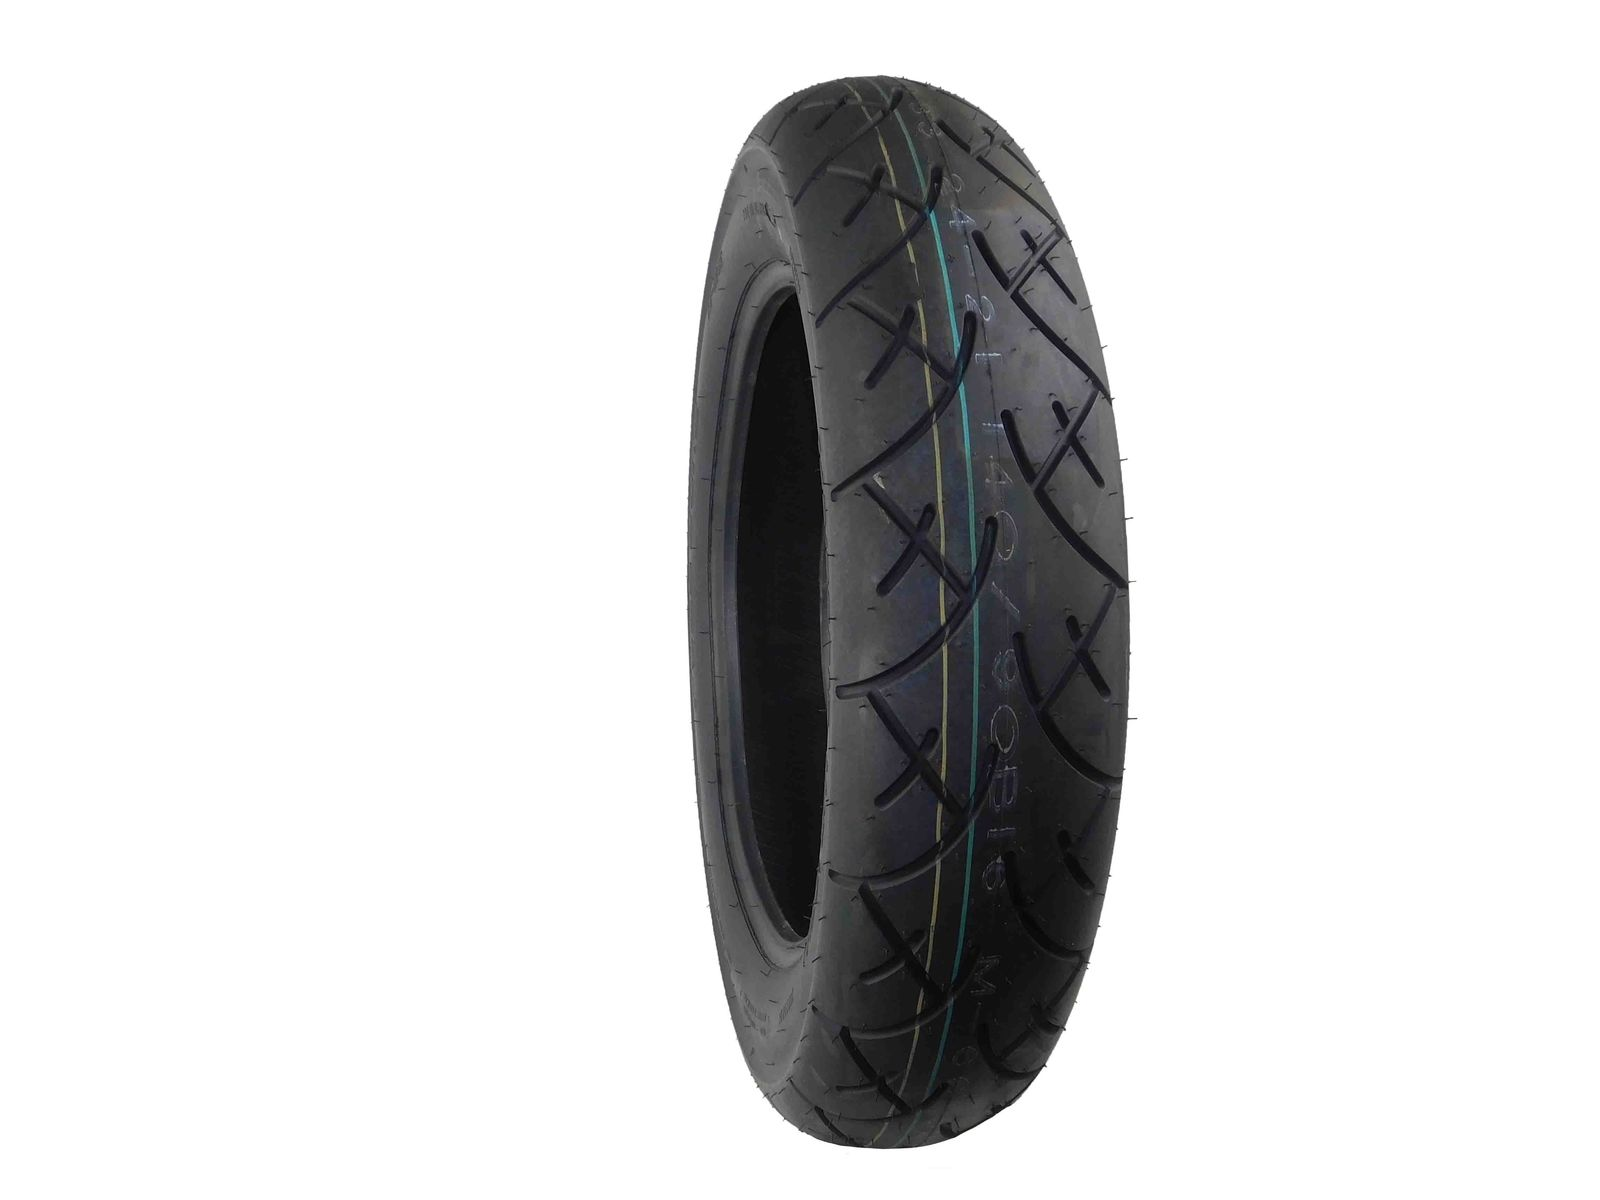 Full-Bore-100-90-19-Front-140-90-16-Rear-Set-Cruiser-Motorcycle-Tires-image-4